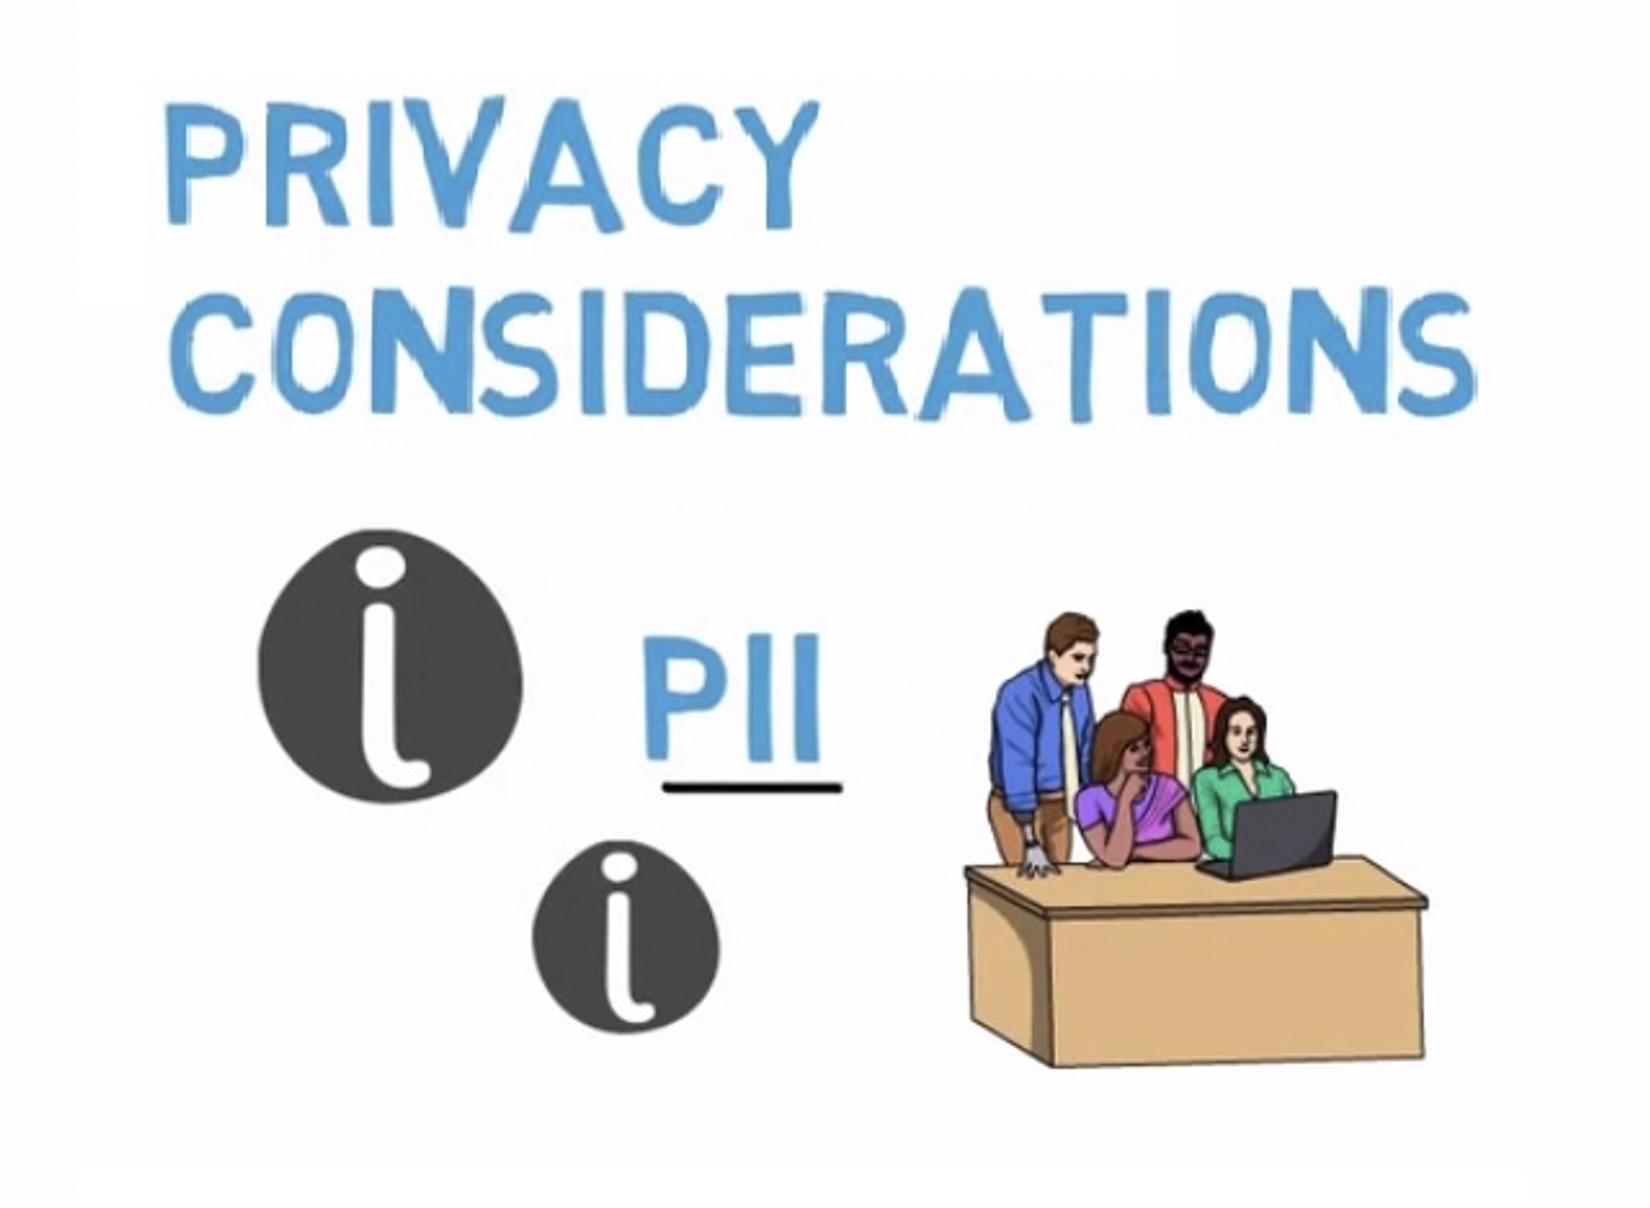 Text reading 'Privacy Considerations' above illustration of people working around a desk and the word 'PII' next two them with two information icons